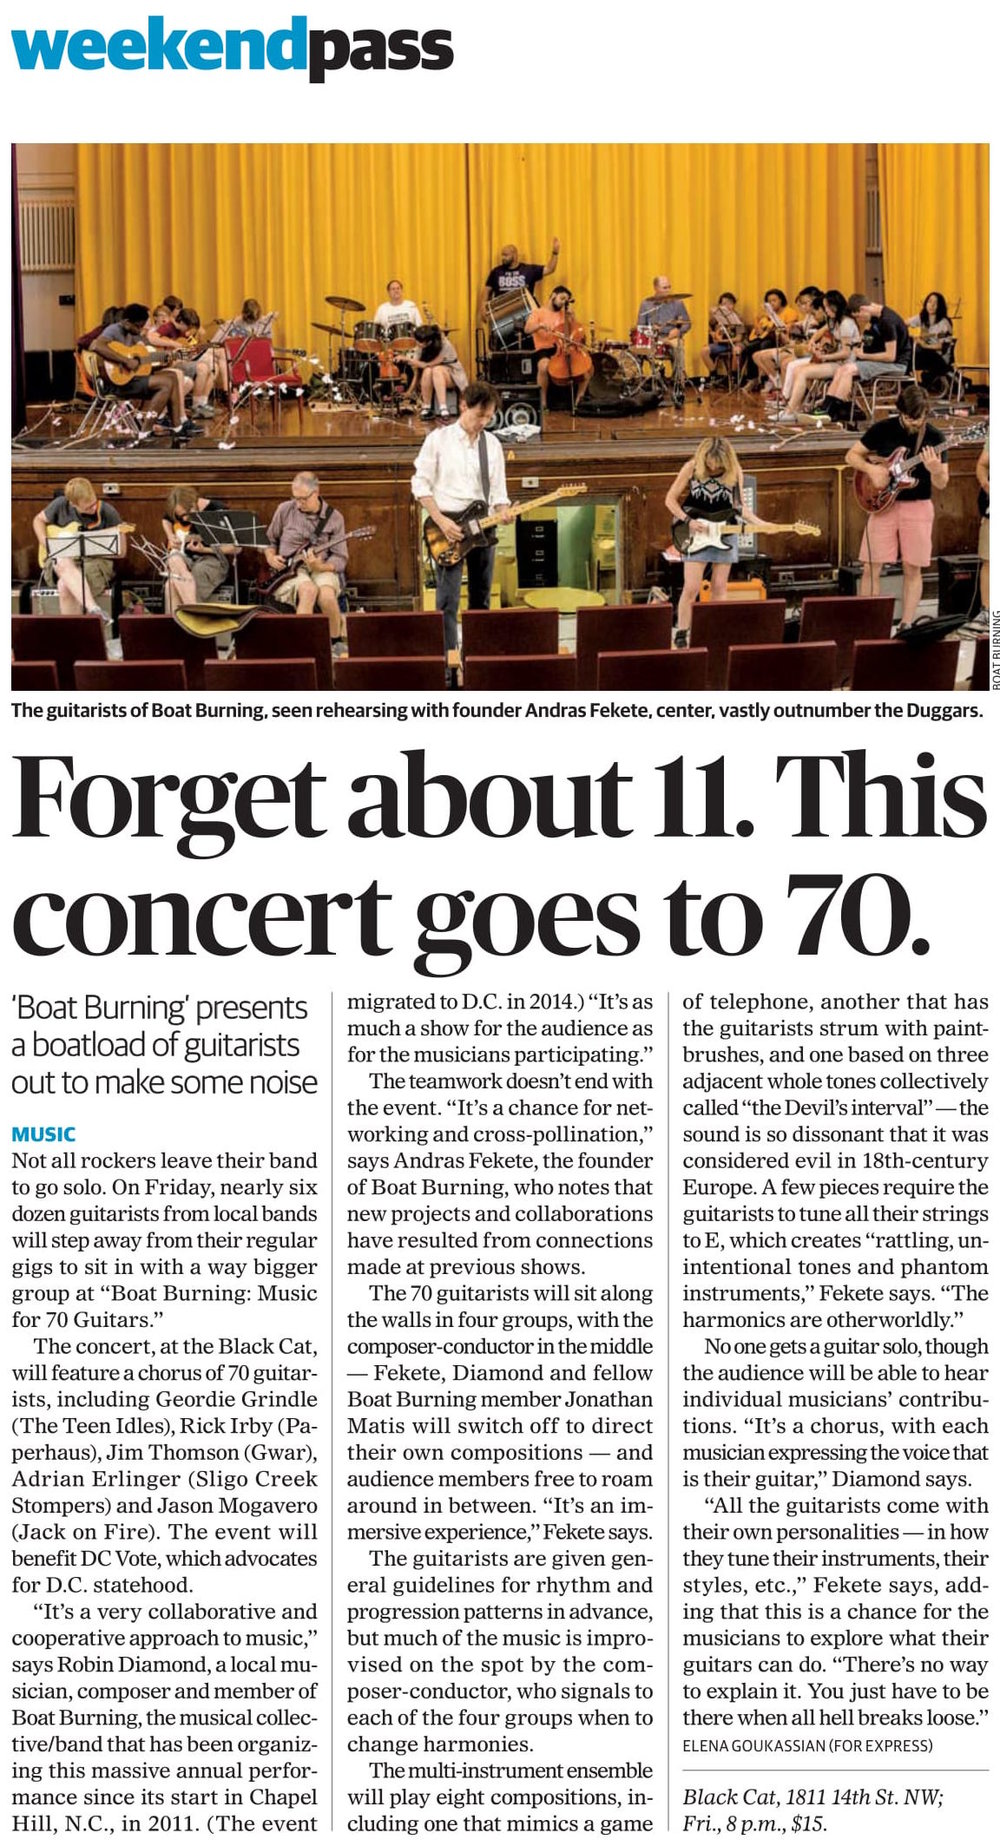 https://www.washingtonpost.com/express/wp/2016/08/24/forget-about-11-this-concert-goes-to-70